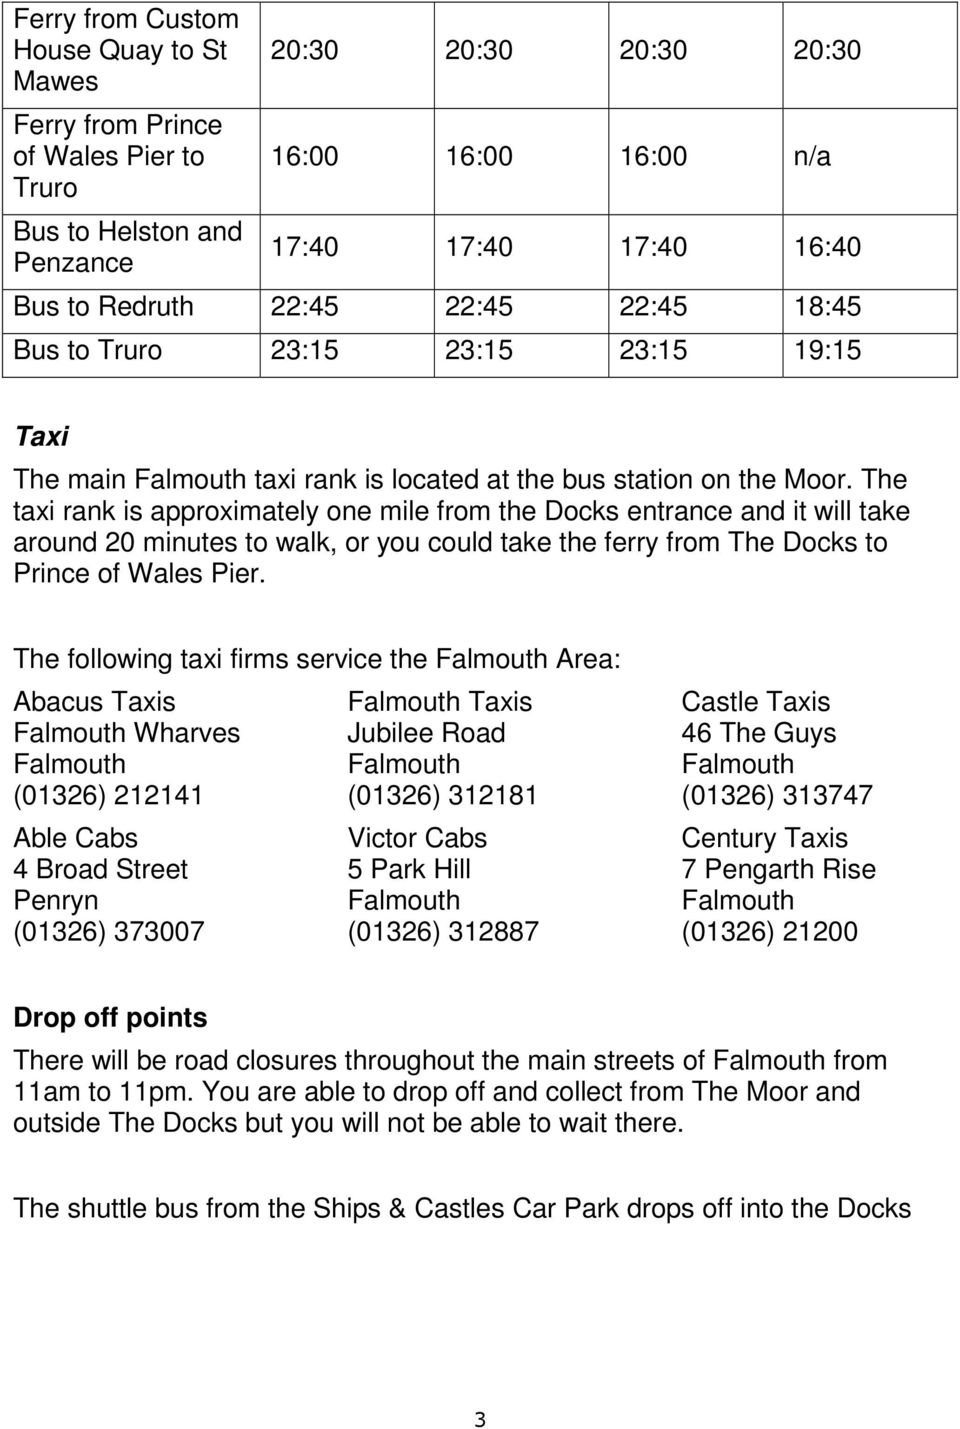 The taxi rank is approximately one mile from the Docks entrance and it will take around 20 minutes to walk, or you could take the ferry from The Docks to Prince of Wales Pier.